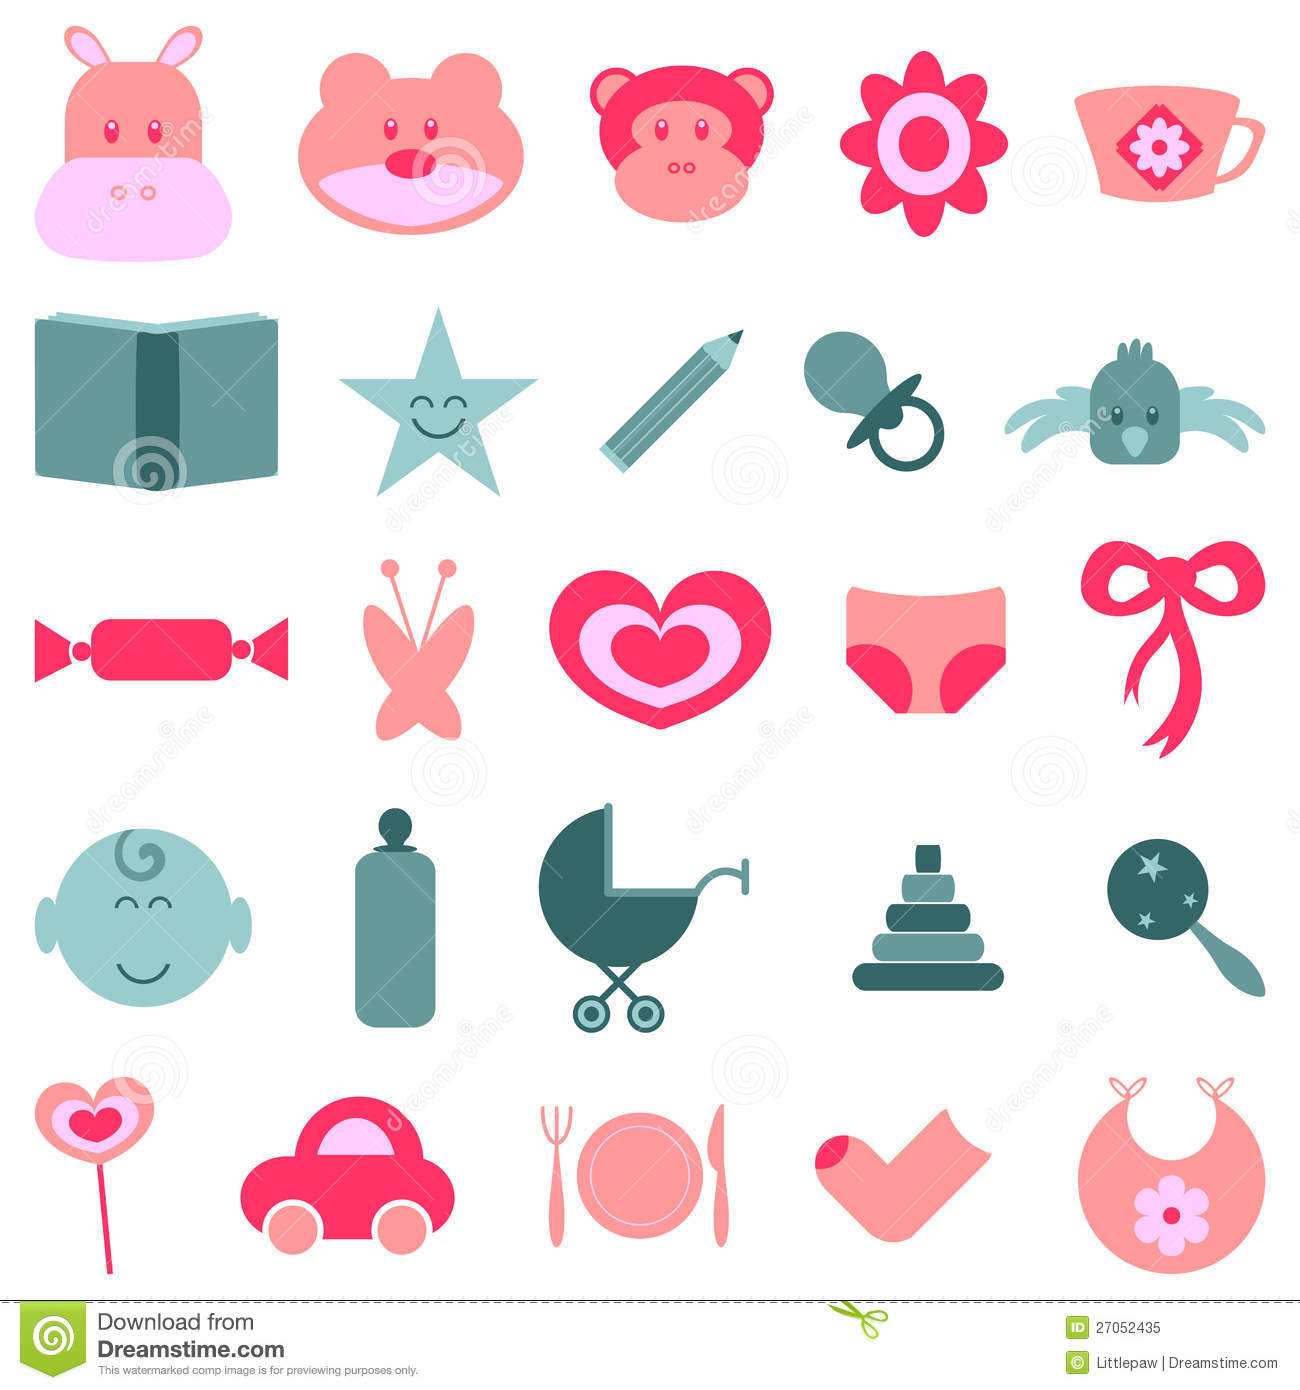 Cute animal icons sketch freebie download free resource for.